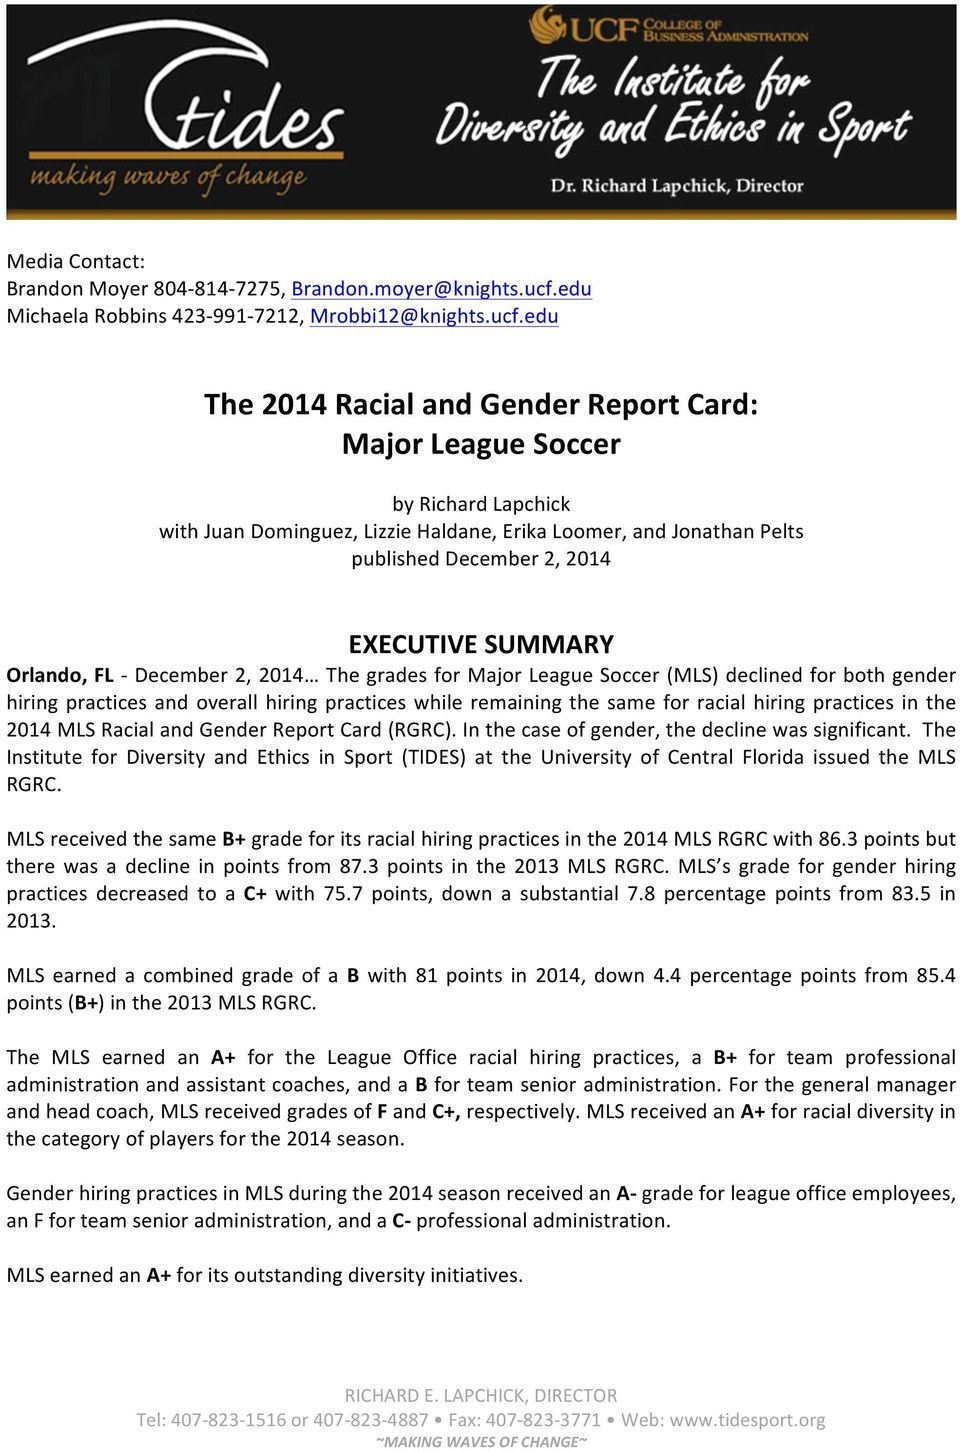 edu The 2014 Racial and Gender Report Card: Major League Soccer by Richard Lapchick with Juan Dominguez, Lizzie Haldane, Erika Loomer, and Jonathan Pelts published December 2, 2014 EXECUTIVE SUMMARY